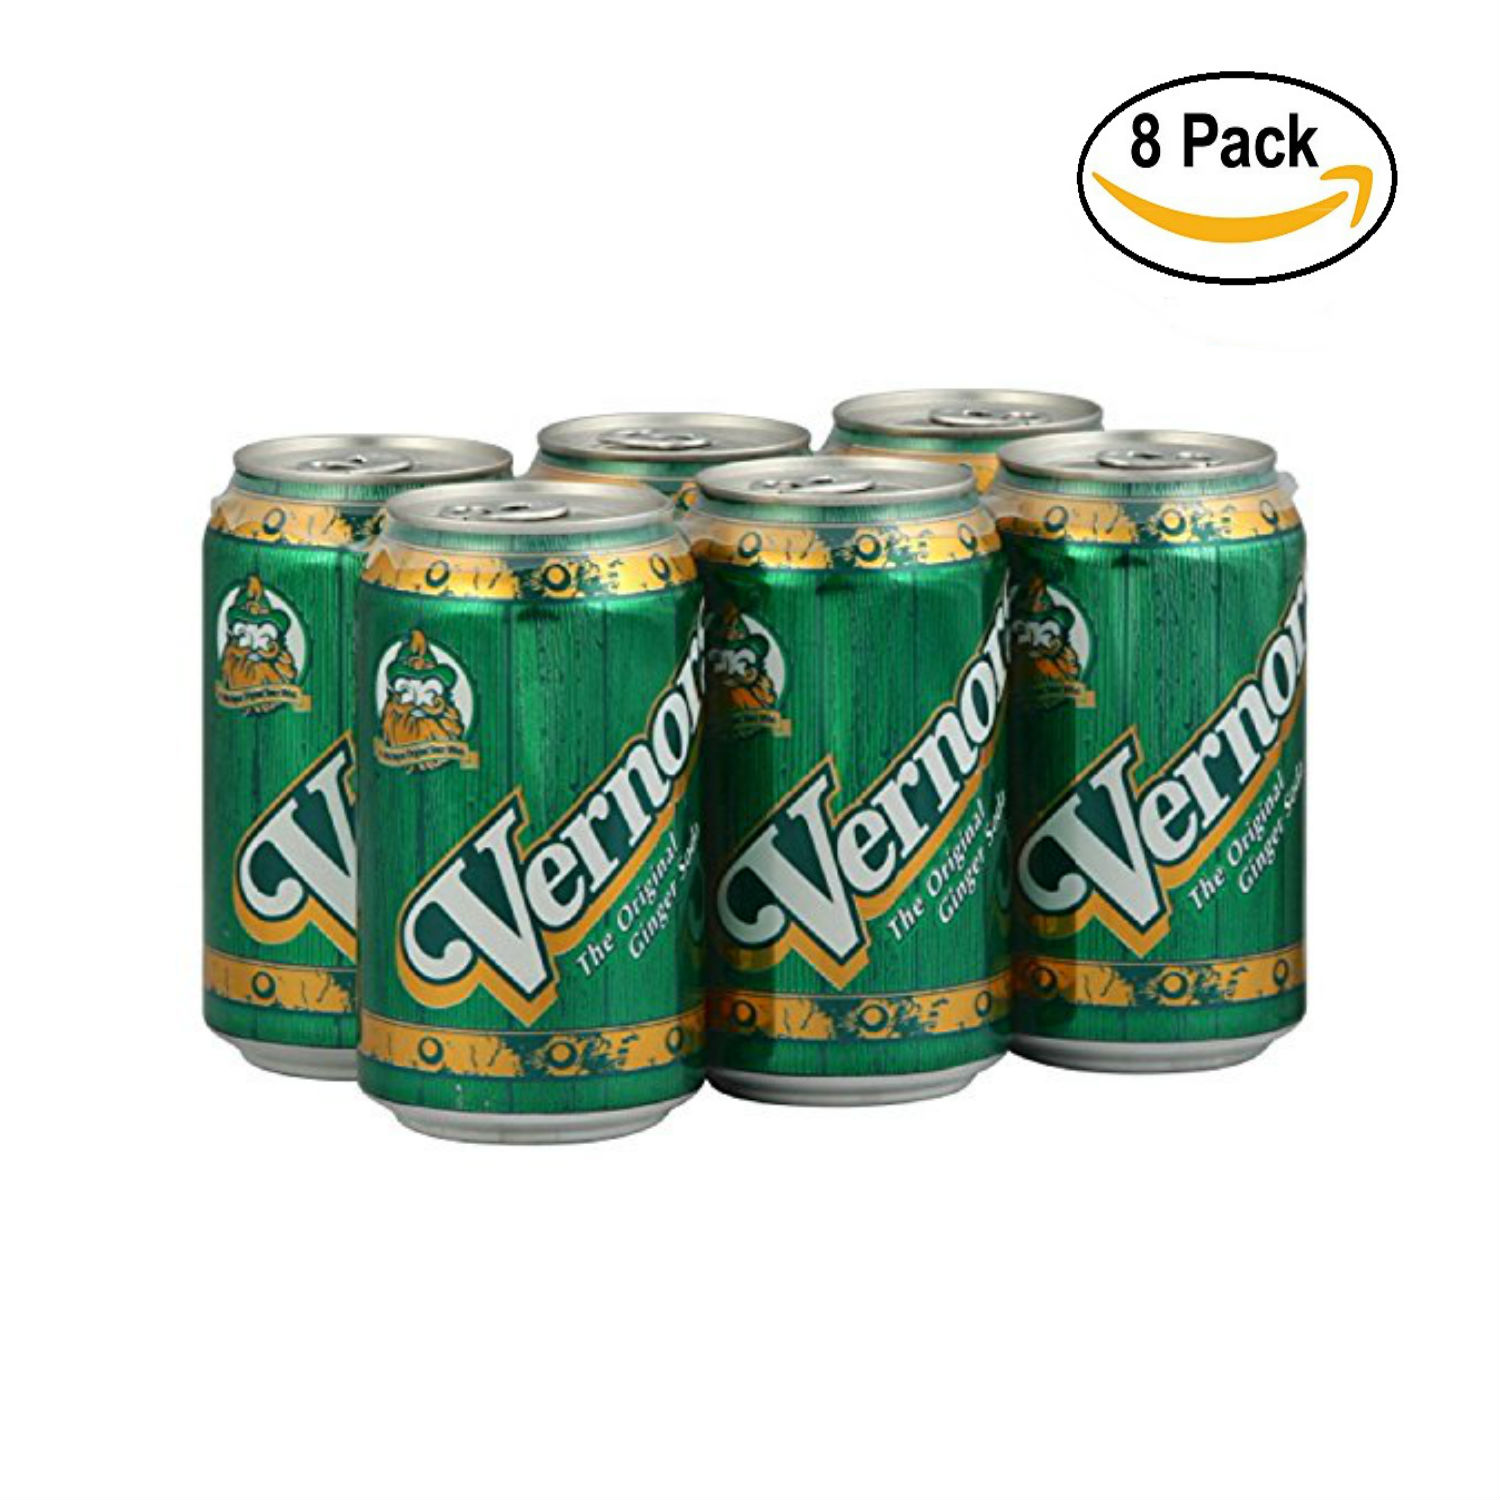 VERNORS, SODA 6PK CAN GNGRALE, 72 FO, ( Pack of 4 x 2 )